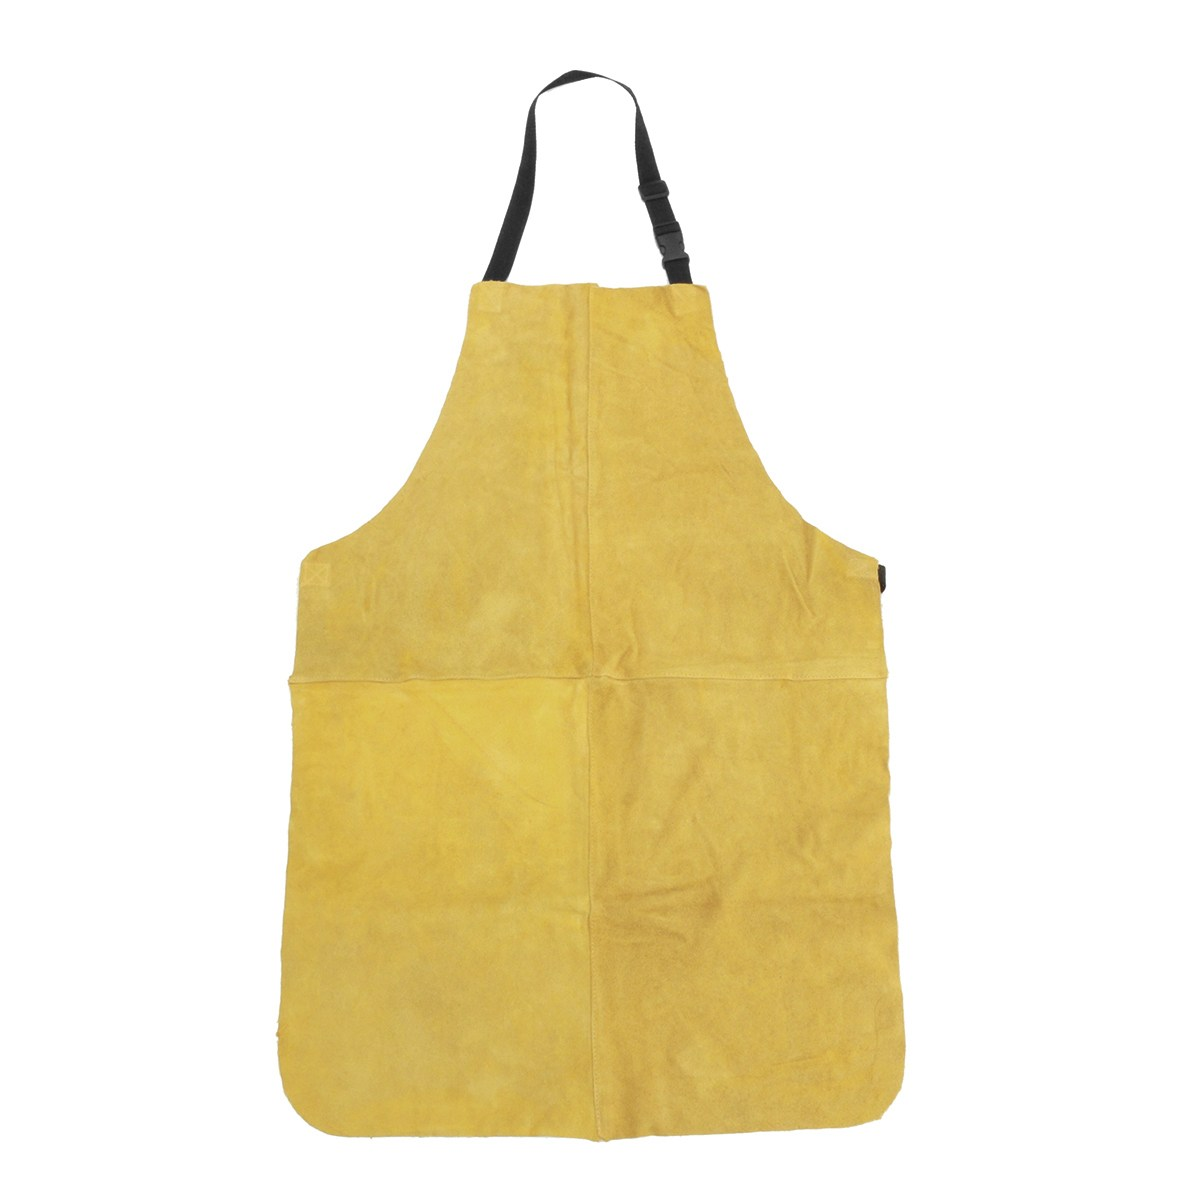 Safurance Welders Dual Leather Welding Cutting Bib Shop Apron Heat Resistant Workplace Safety Safety Clothing Self Protect